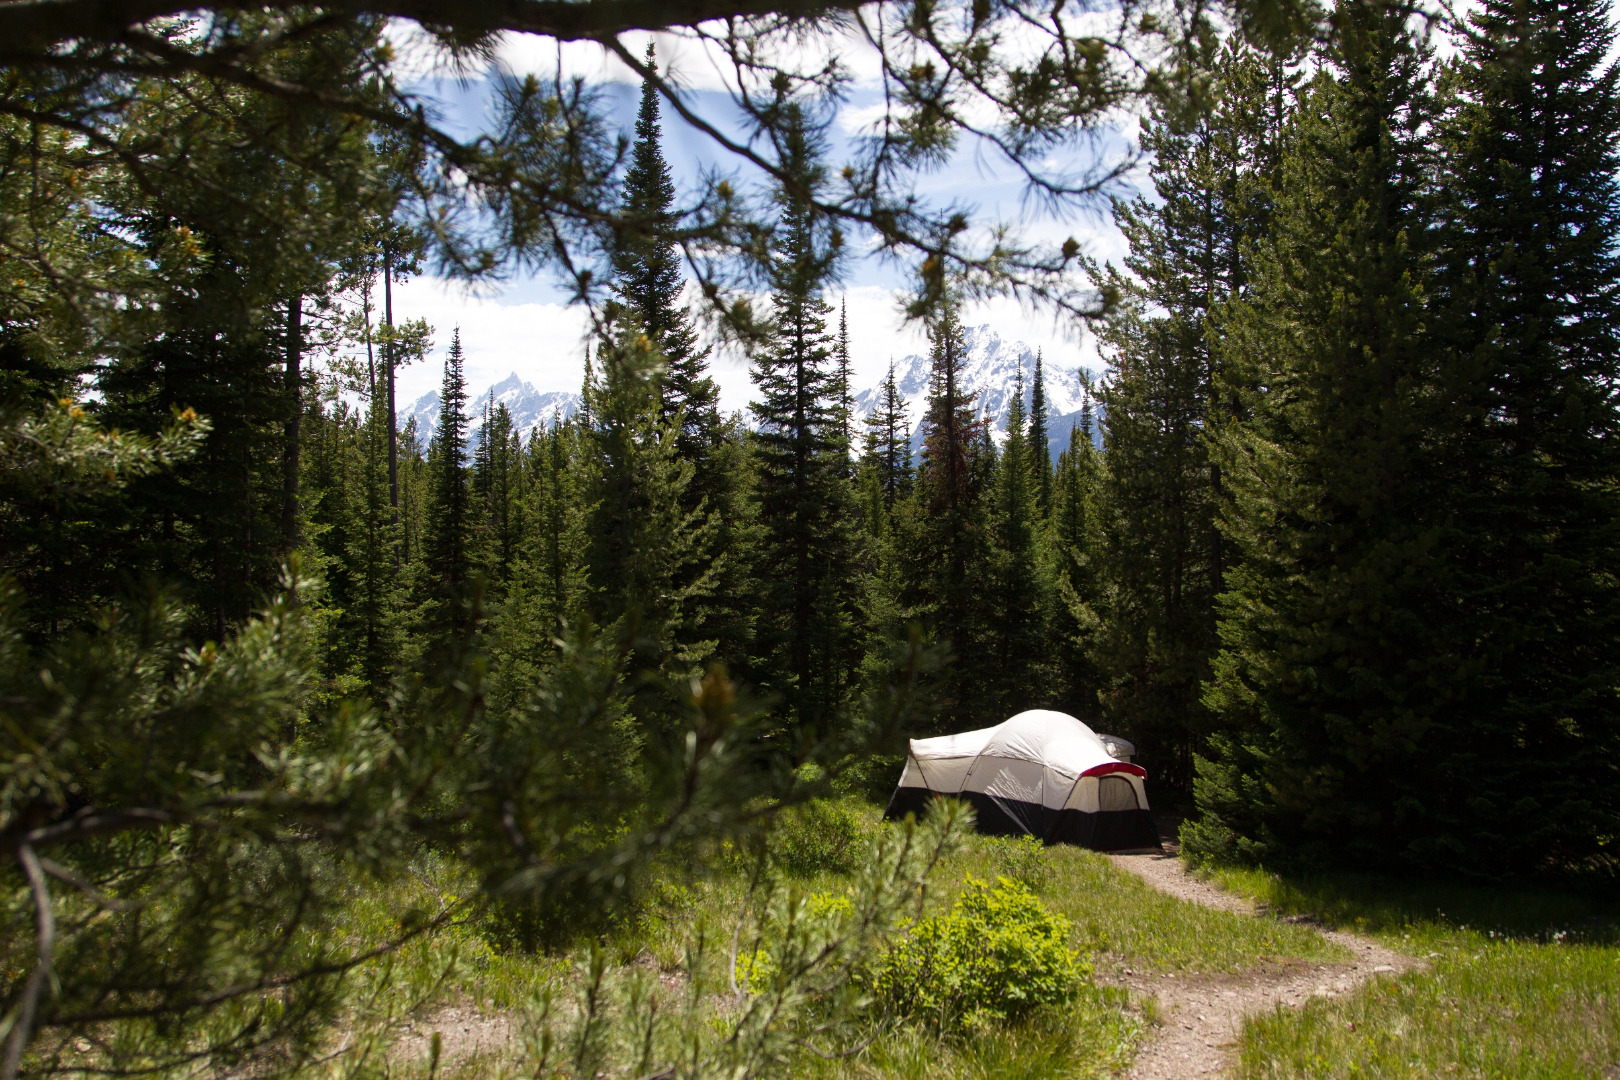 Colter Bay C&ground & Camping